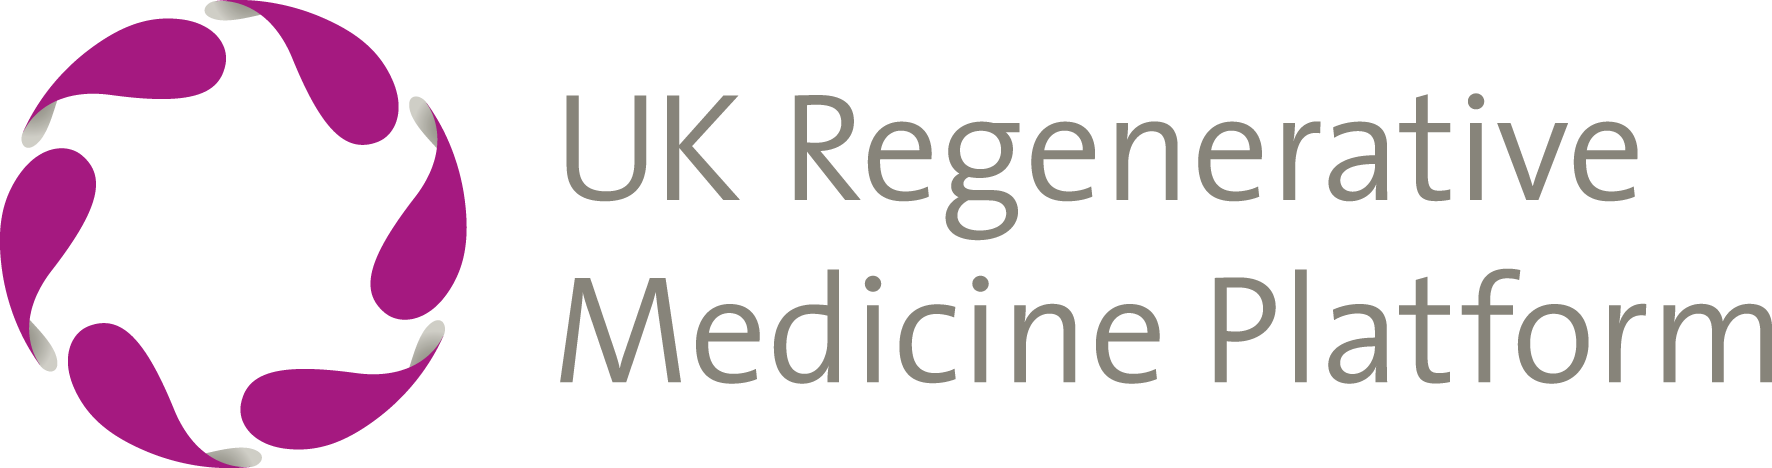 Home · UK Regenerative Medicine Platform